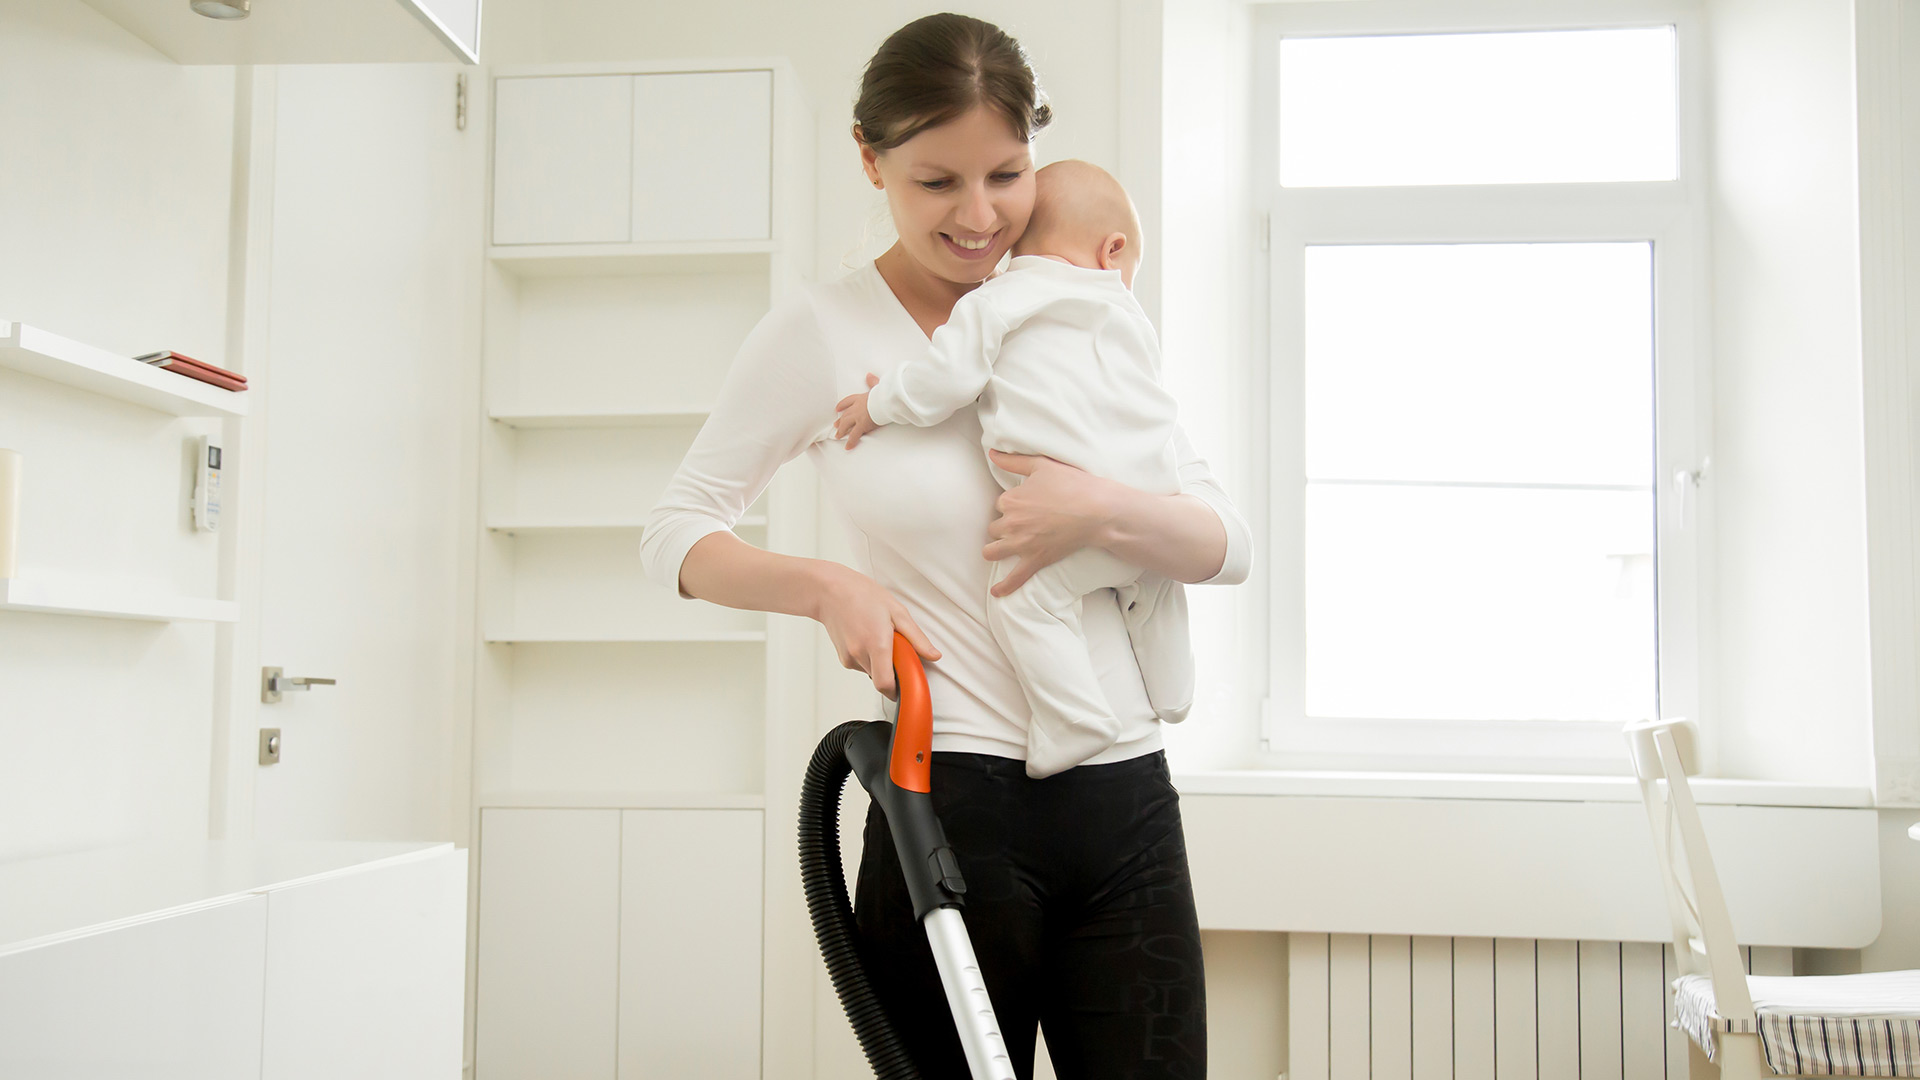 Looking for a semi nanny maid